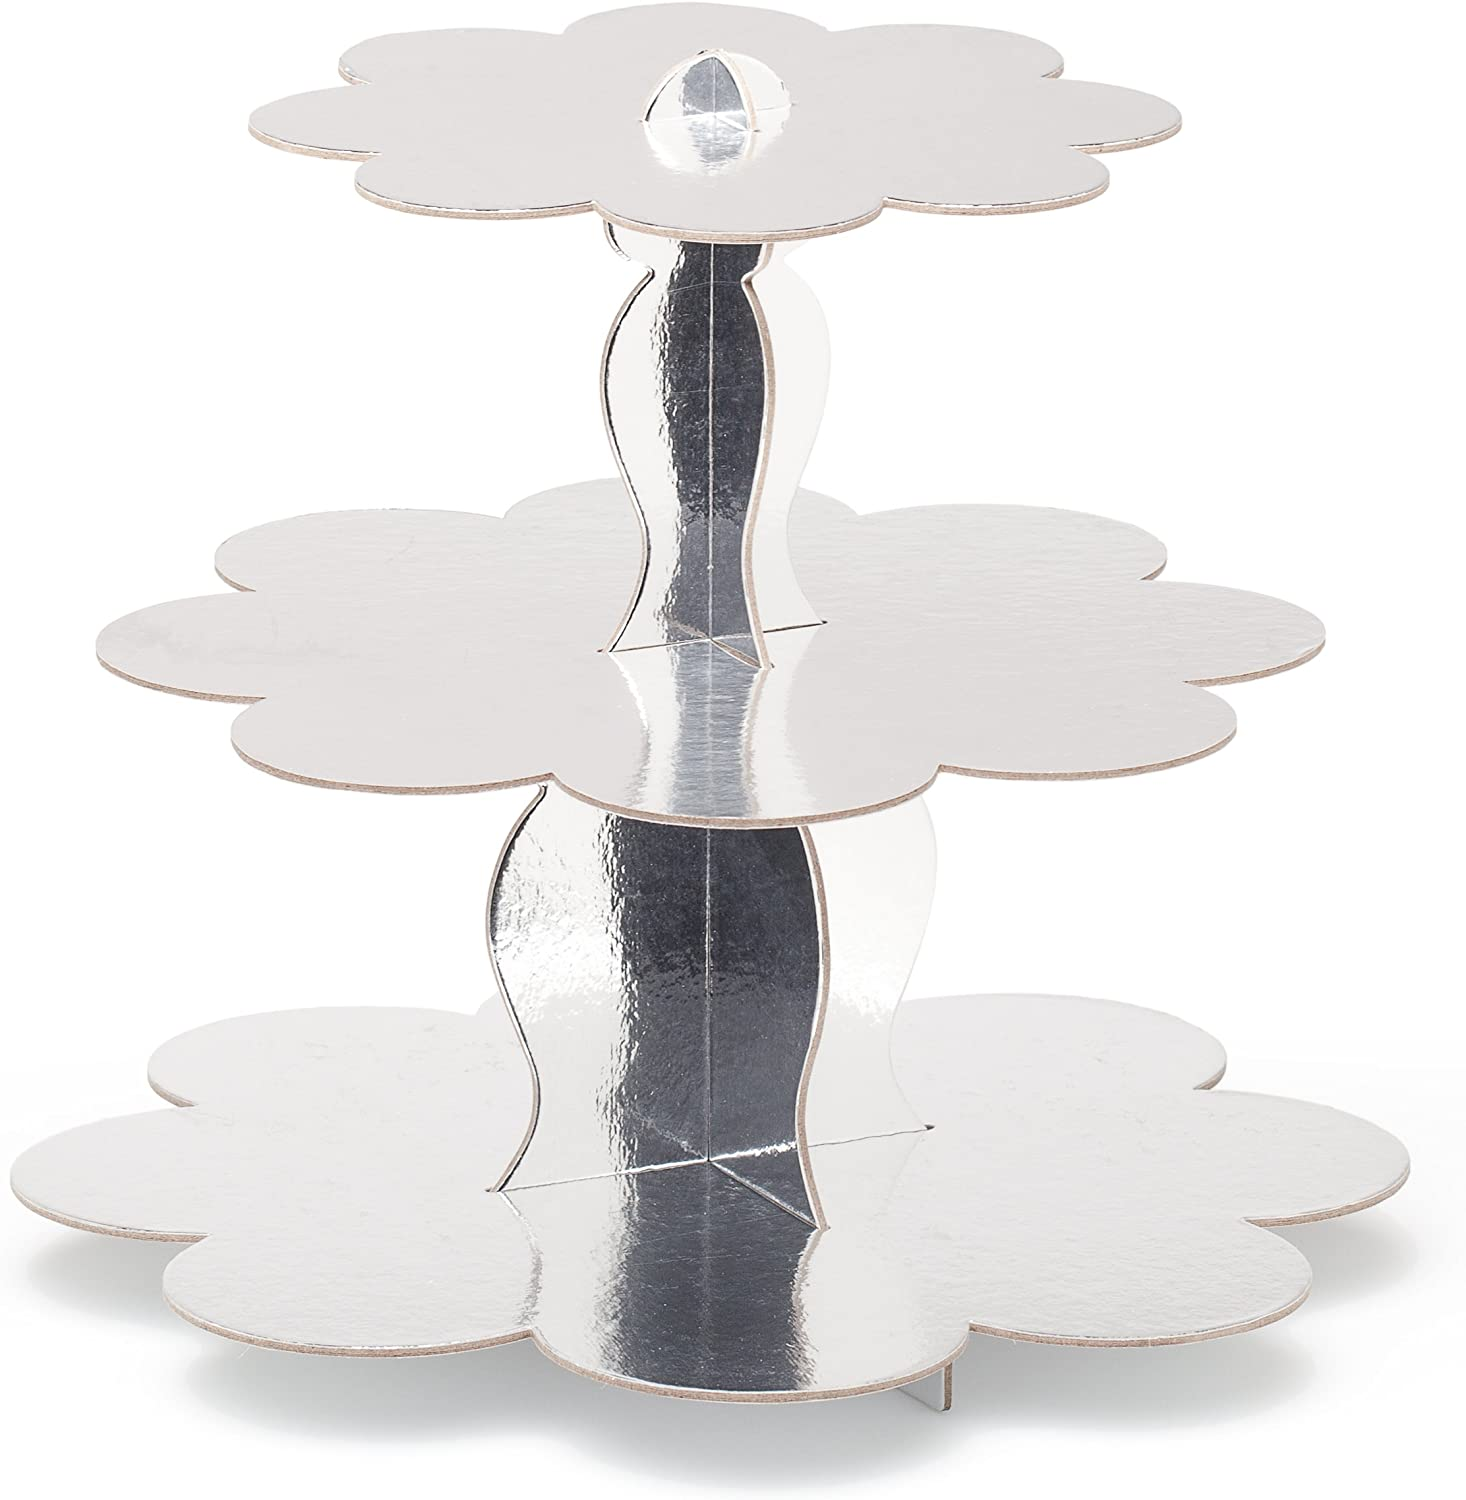 Sturdy Metallic Gold Finish Durable Cardboard 11.5 Height x 14 Diameter Display /& Serve Desserts or Appetizers Simply Baked 3-Tier Cake Stand